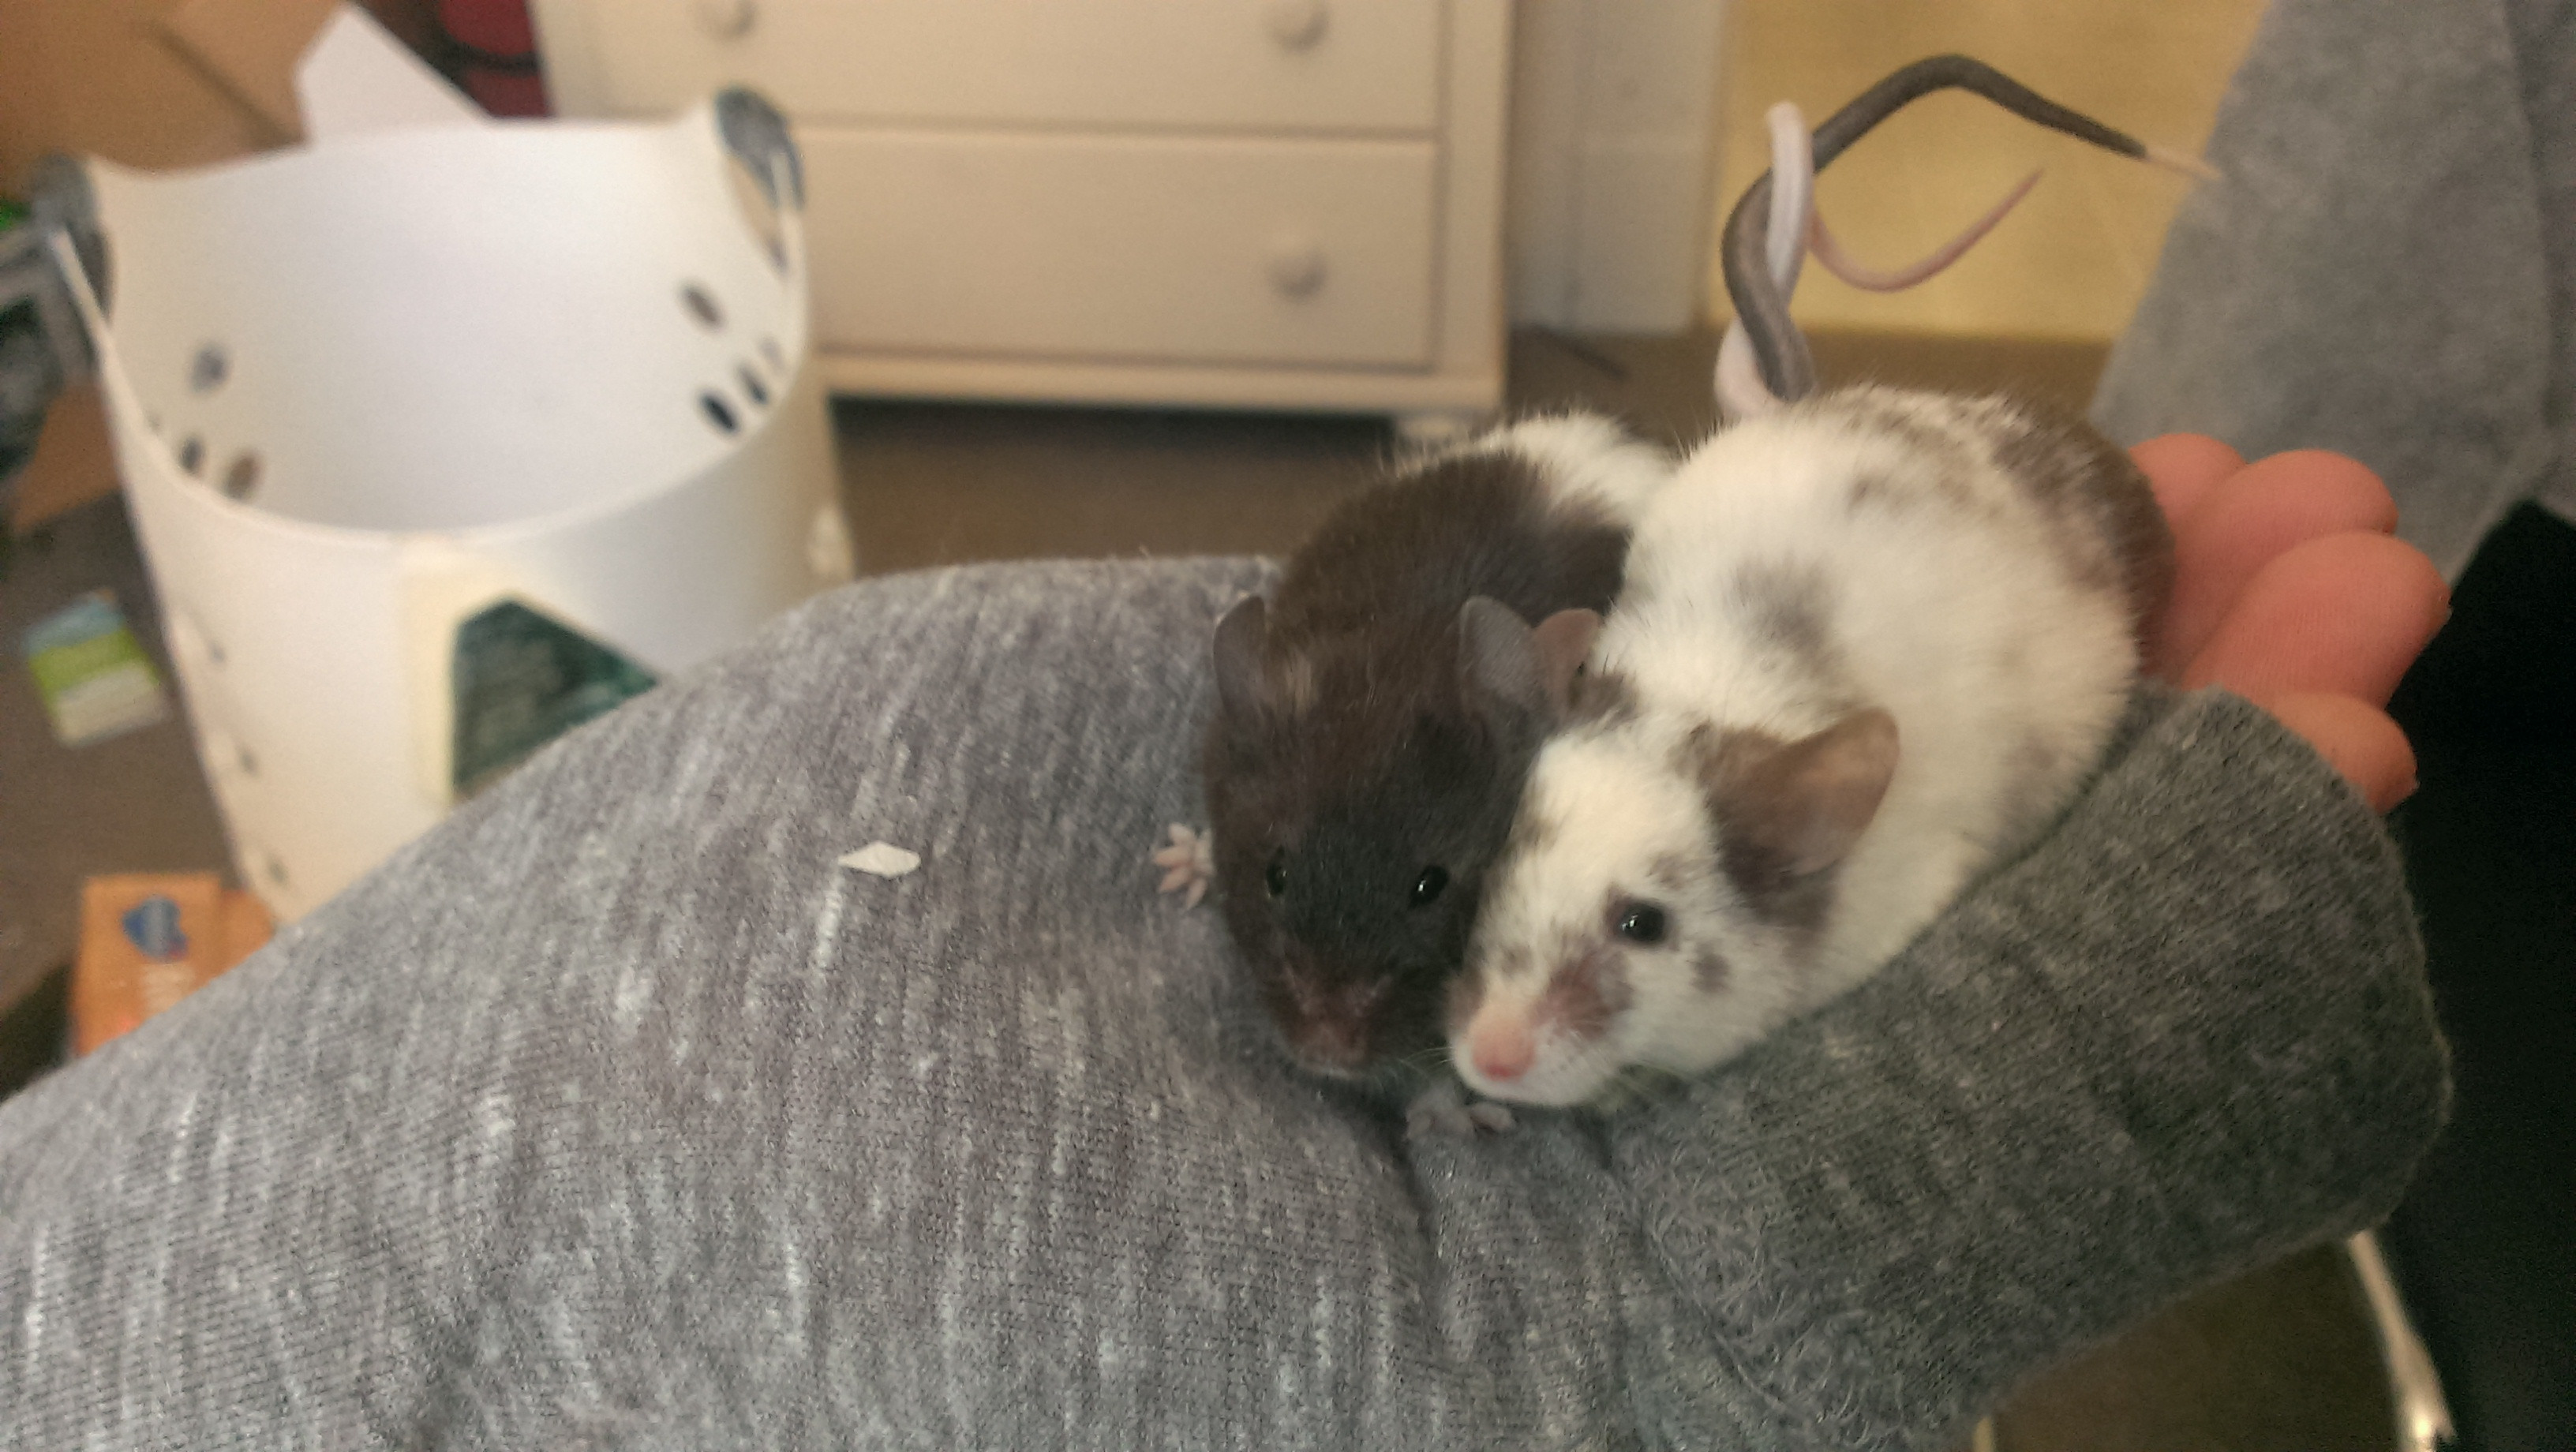 Mice Tangled Together With their Tails When Cuddling